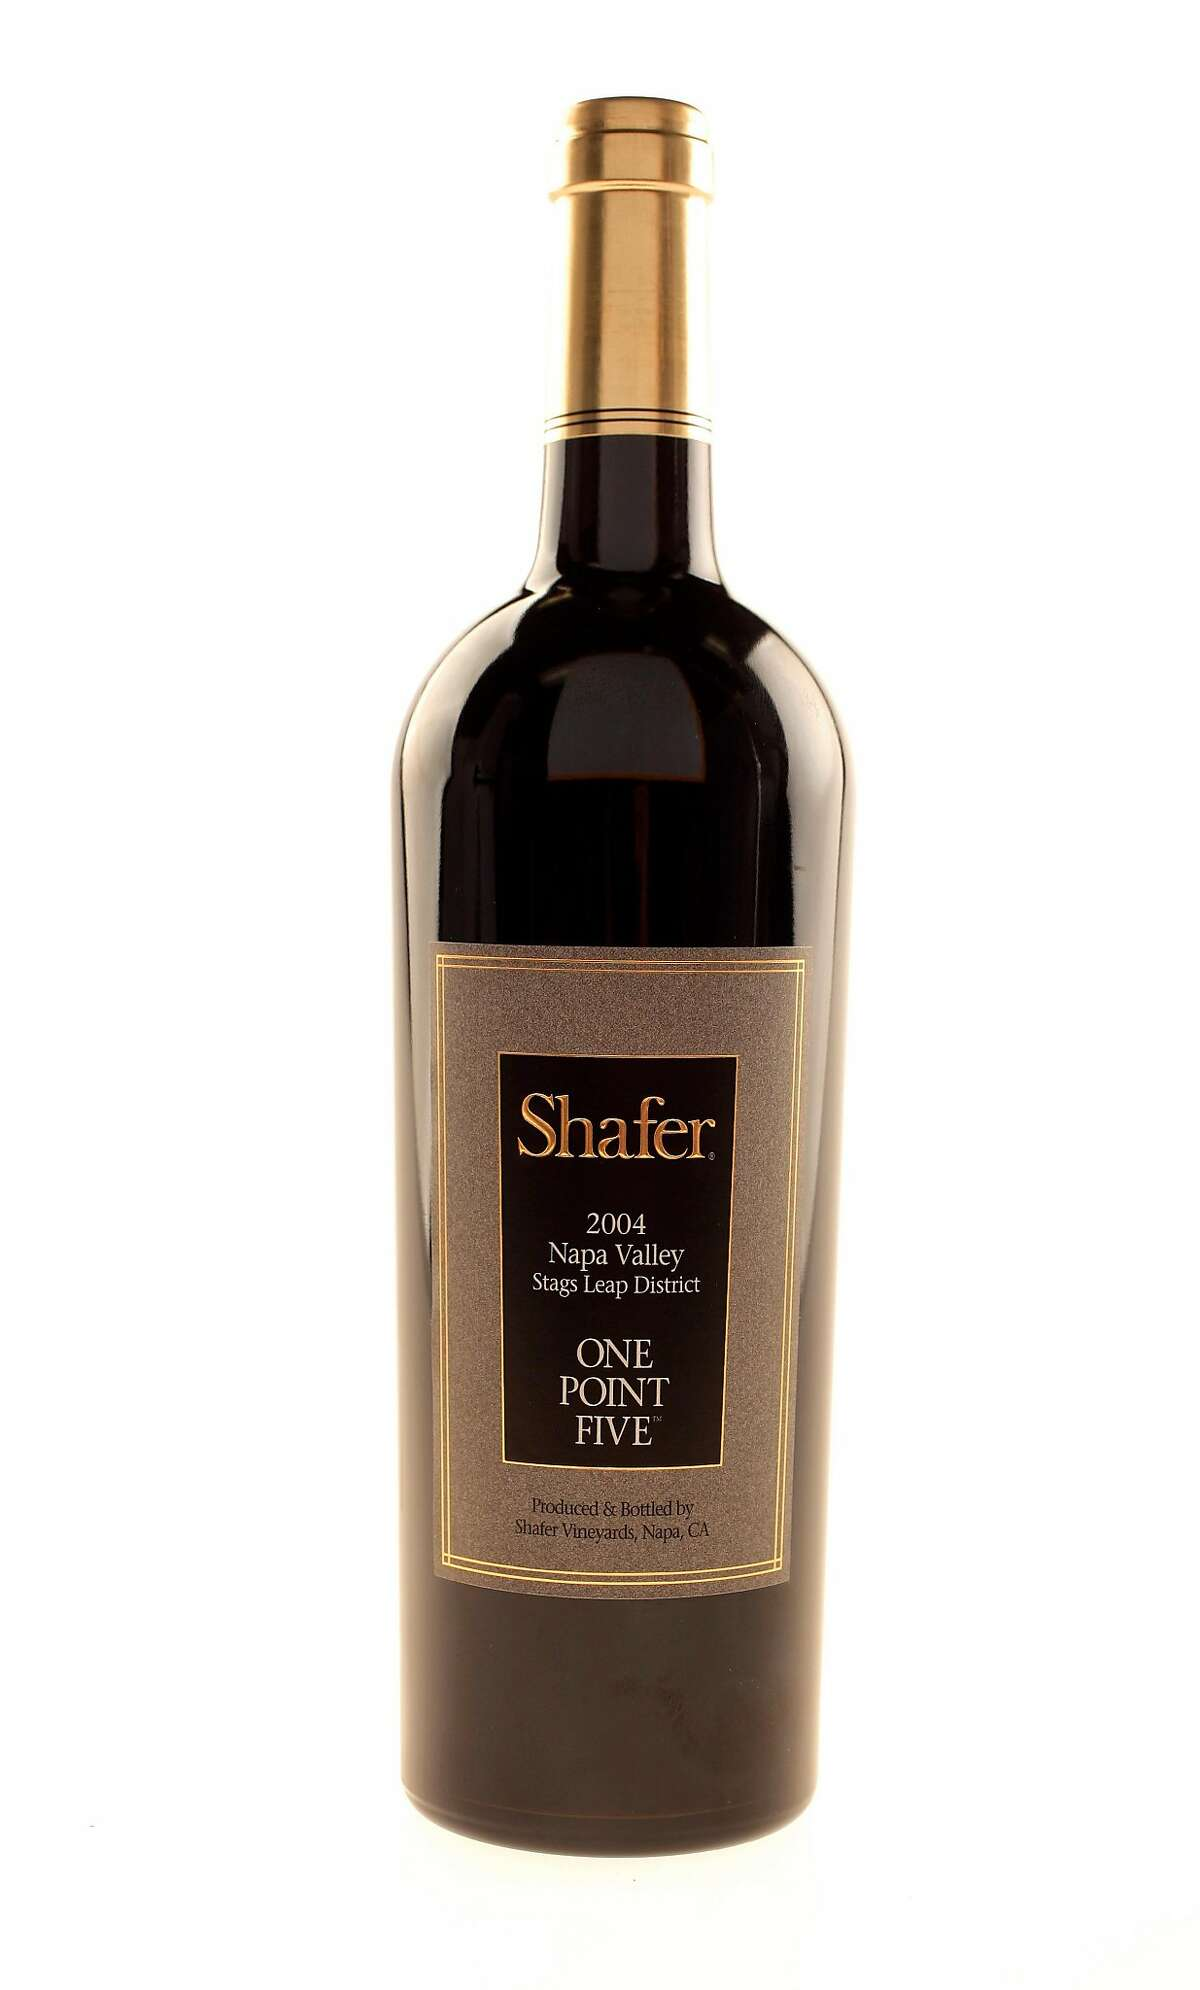 SN16_SHAFER_01JOHNLEE.JPG Shafer One Point Five wine. By JOHN LEE/SPECIAL TO THE CHRONICLE Ran on: 03-16-2007